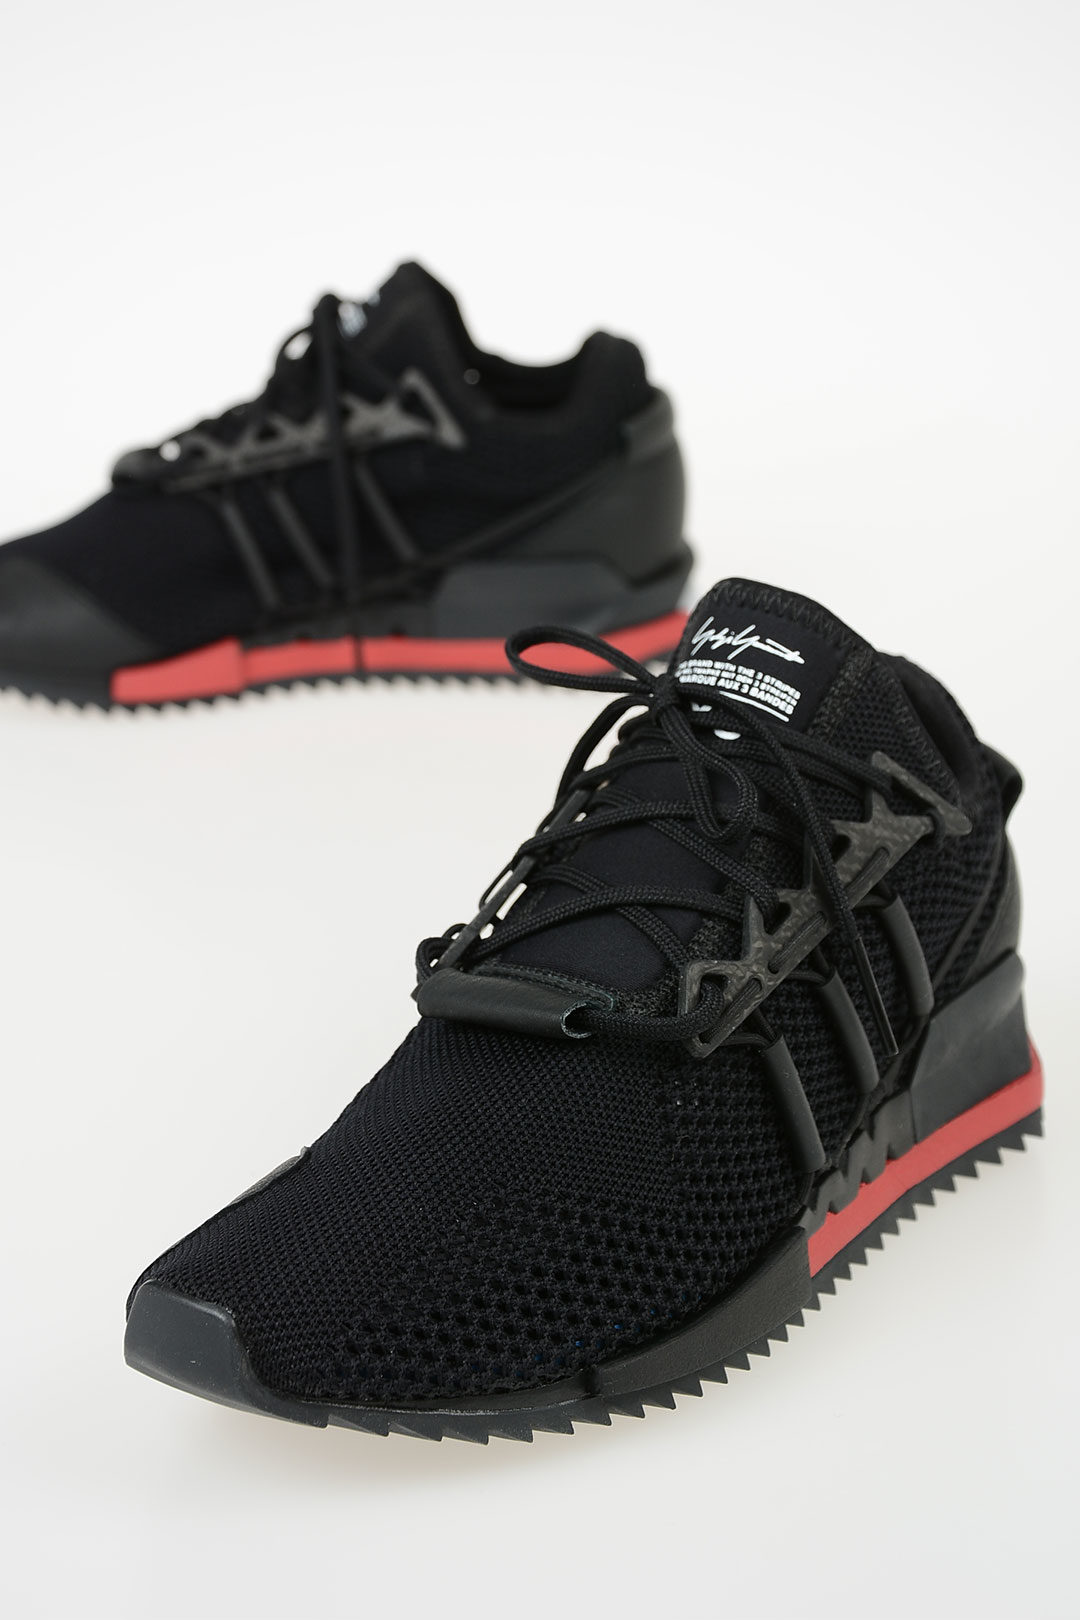 fea96406253b6 Adidas Y3 Sneakers HARIGANE - Glamood Outlet